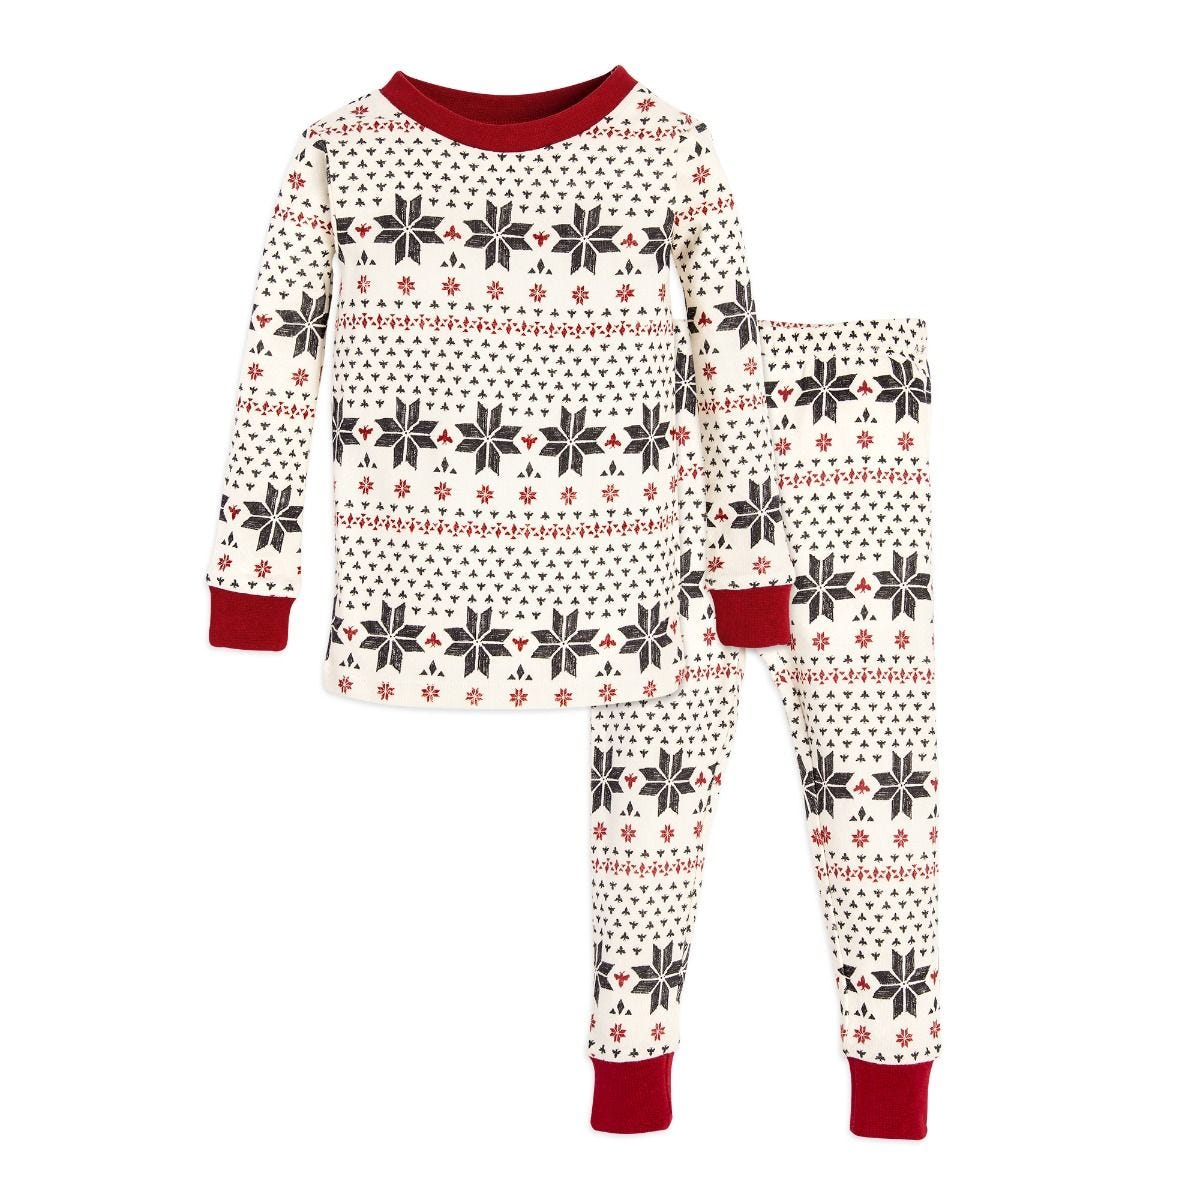 8689f6486344 Hand Drawn Snowflakes Organic 2-piece Baby Holiday Matching ...